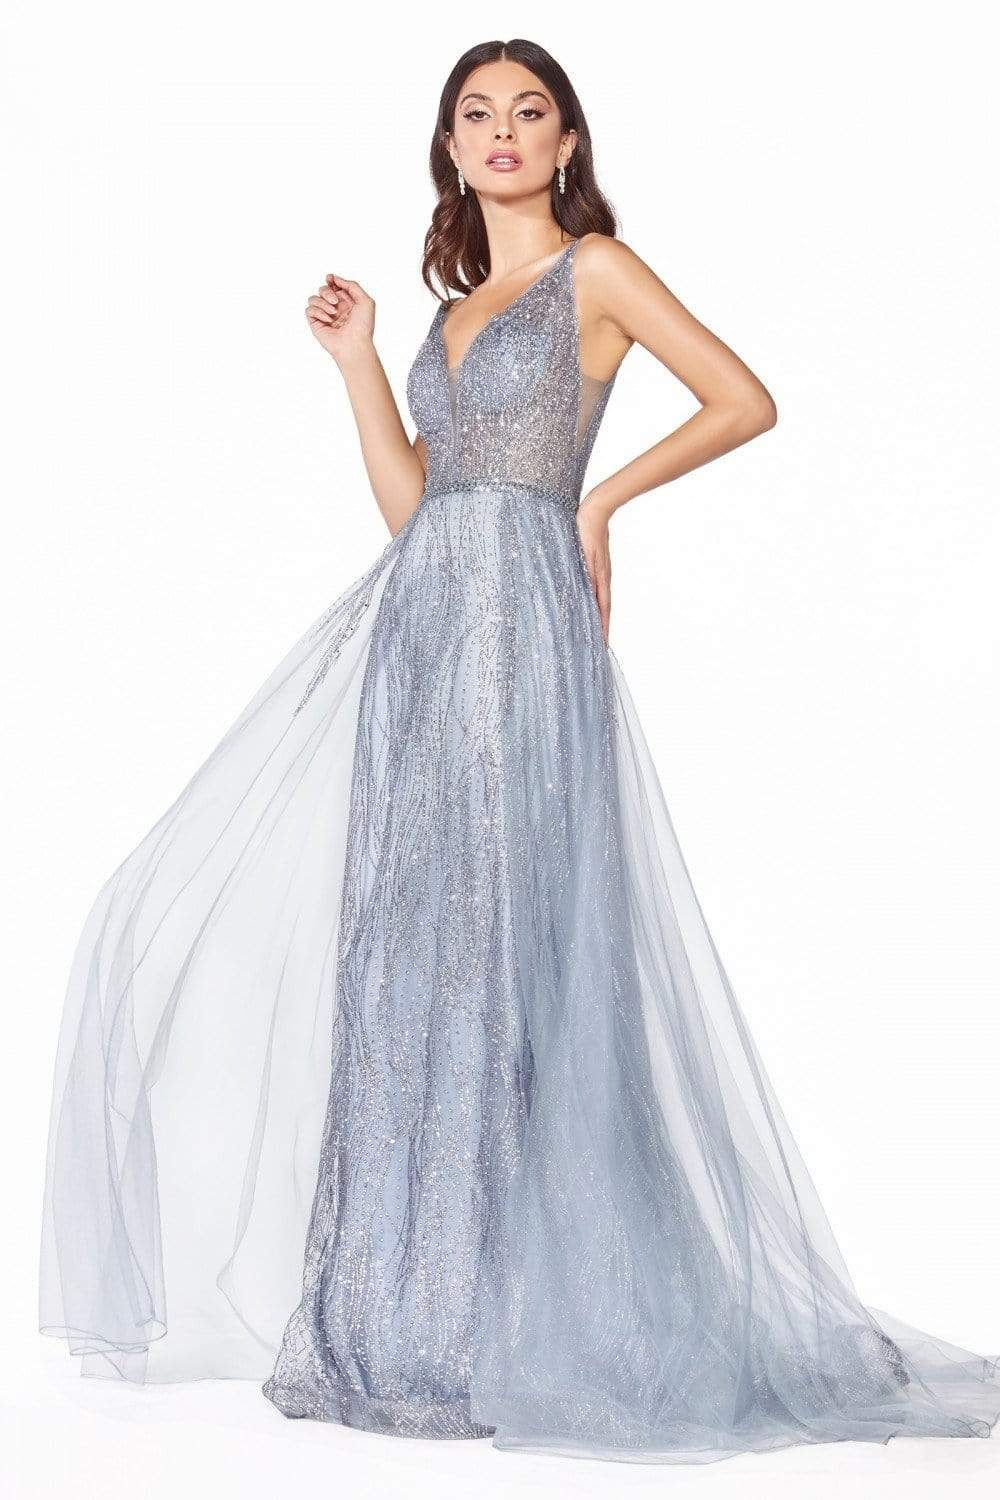 Cinderella Divine - CD0152 Deep V-neck Glitter Tulle A-line Dress Evening Dresses XXS / Smoky Blue